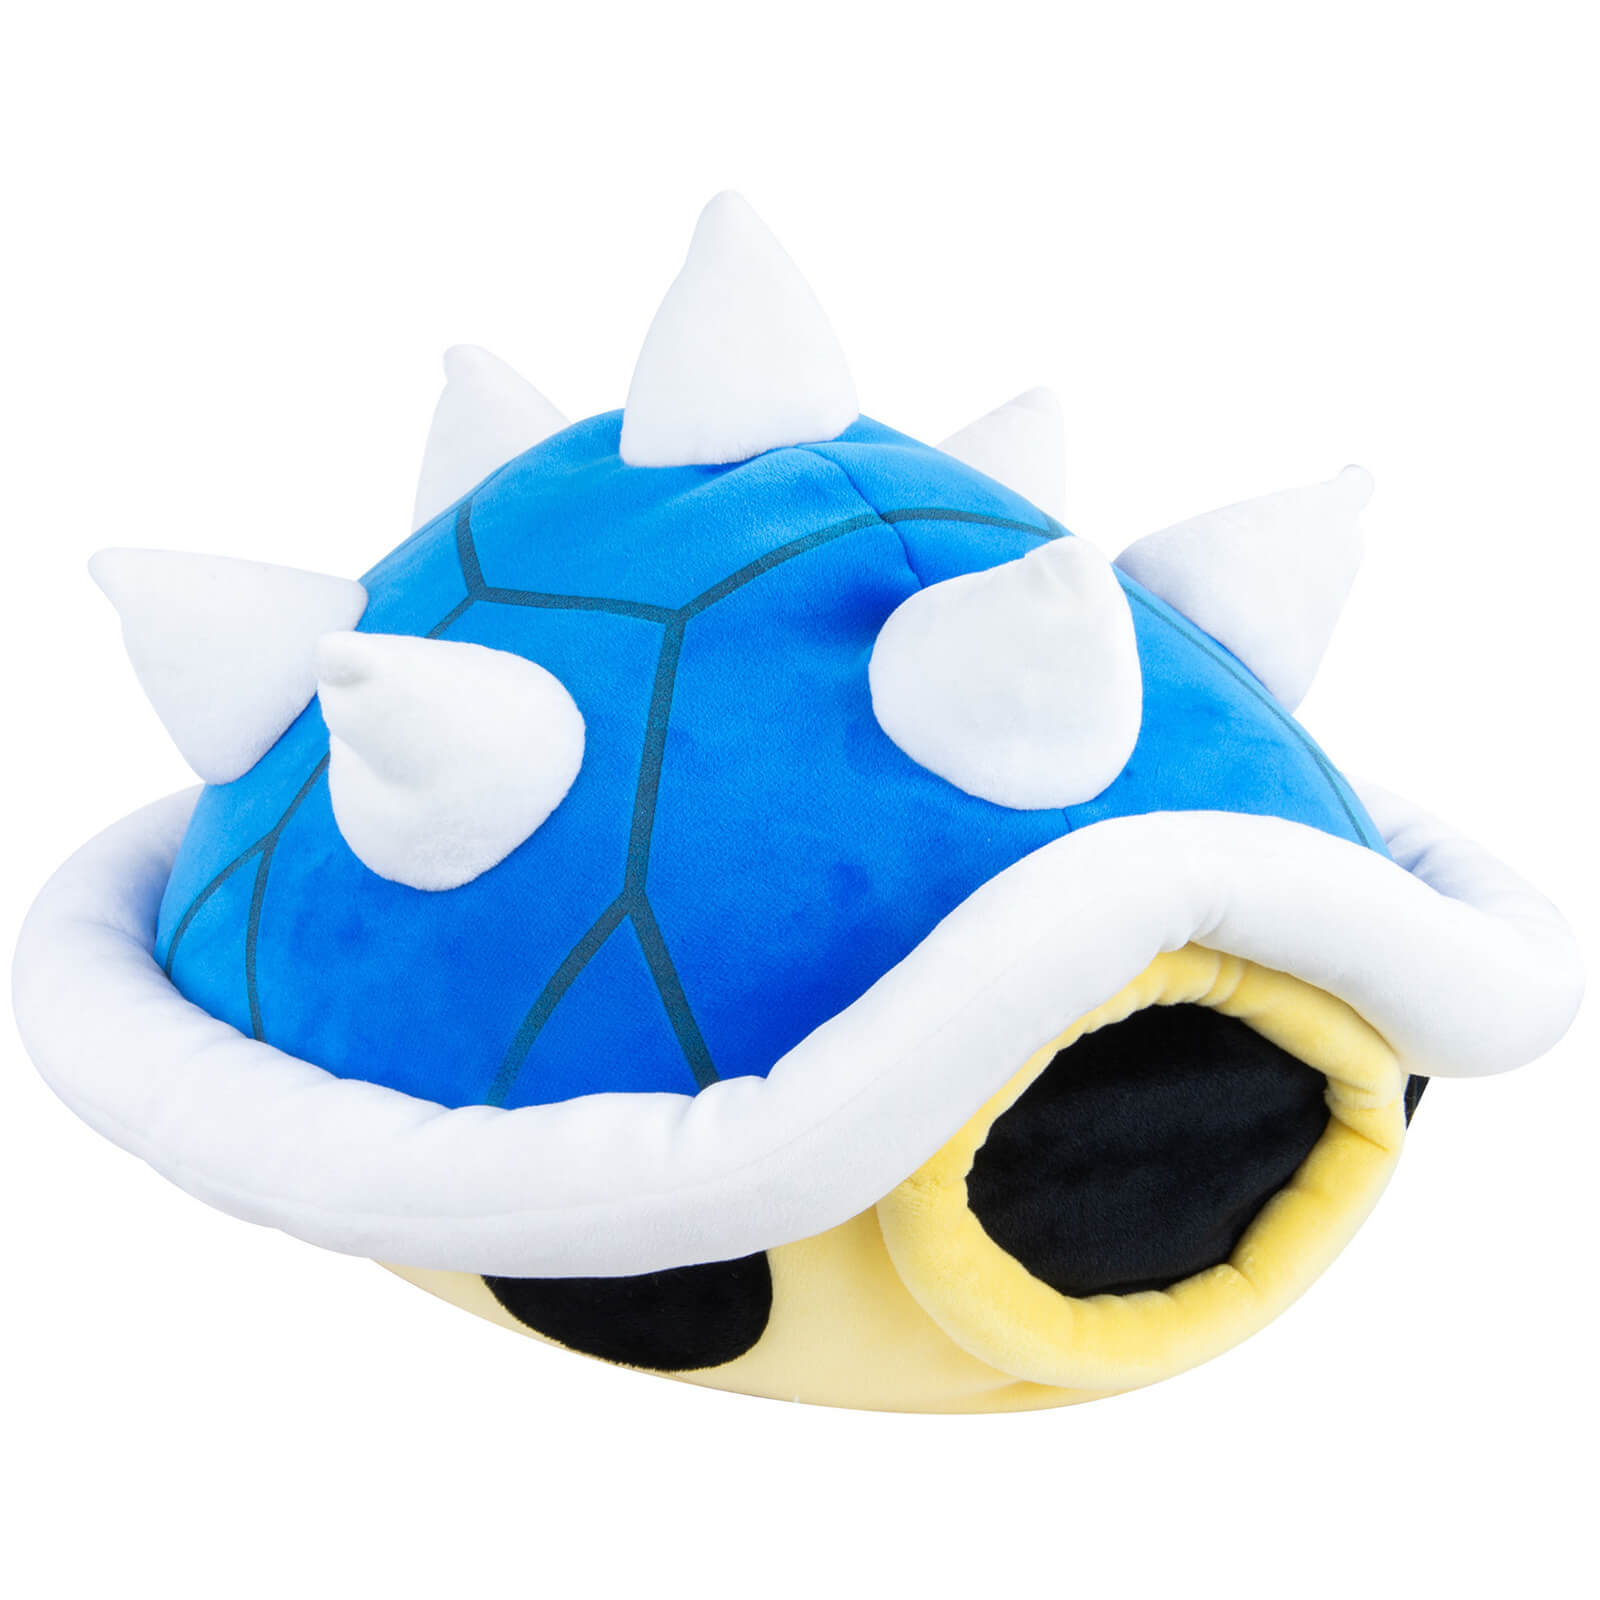 Image of Mario Kart Large Plush Spiny Shell Toy